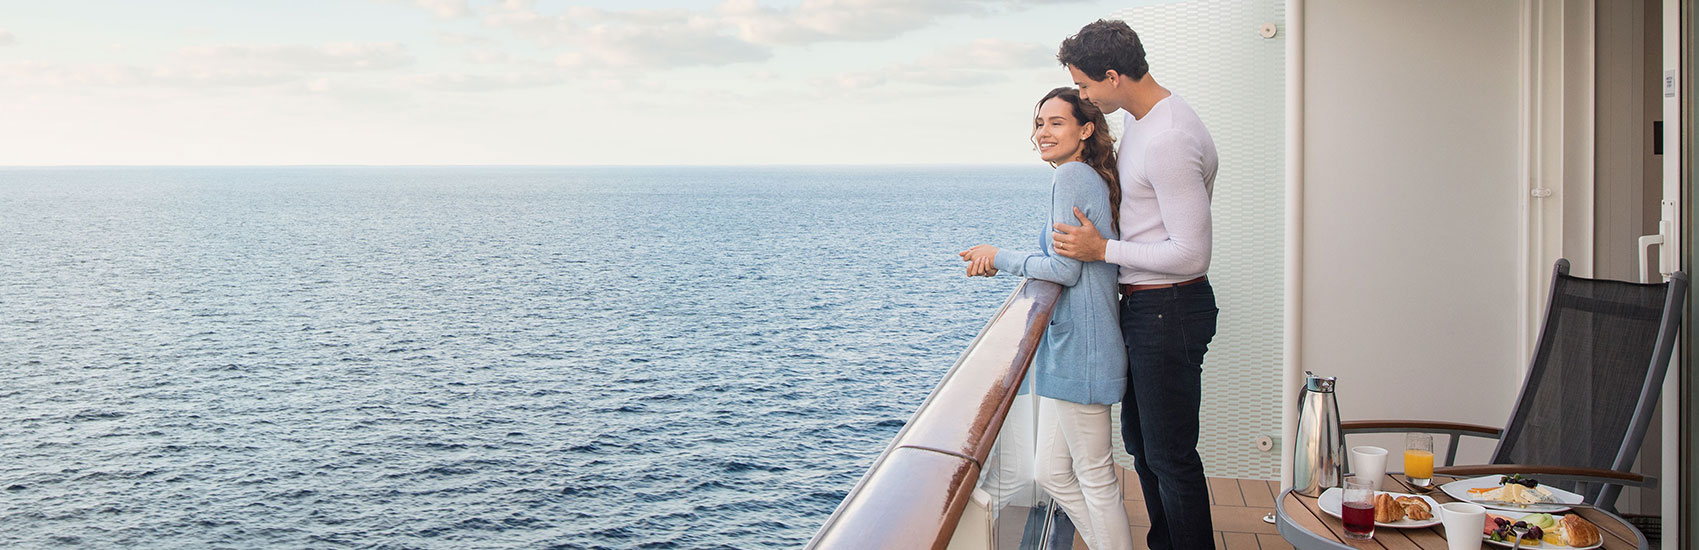 20% Savings + Always Included with Celebrity Cruises